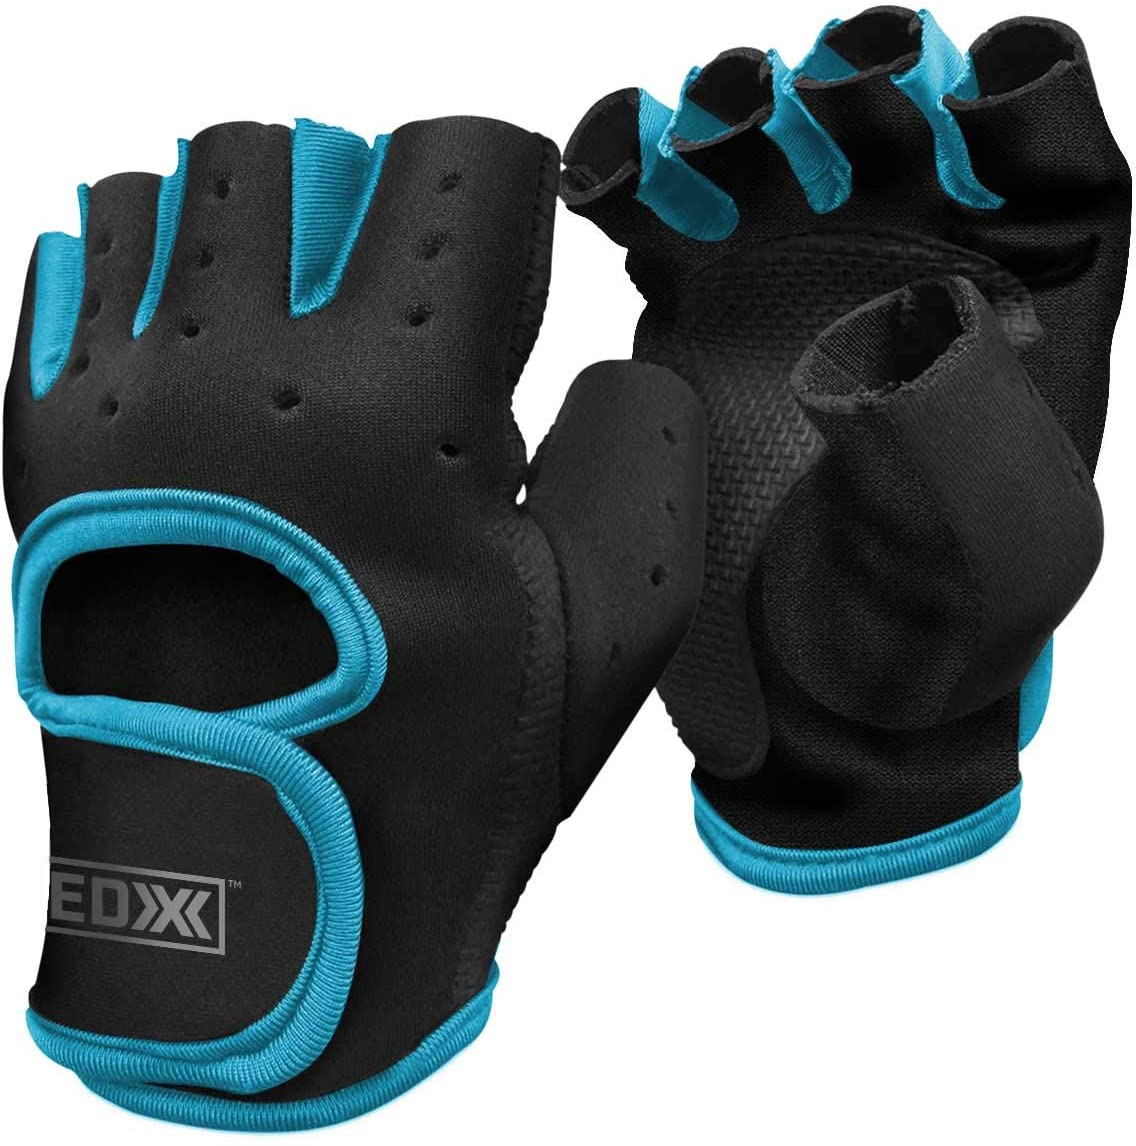 EDX Workout Gloves Weight Lifting for Women Gym, Fitness, Exercise, Powerlifting